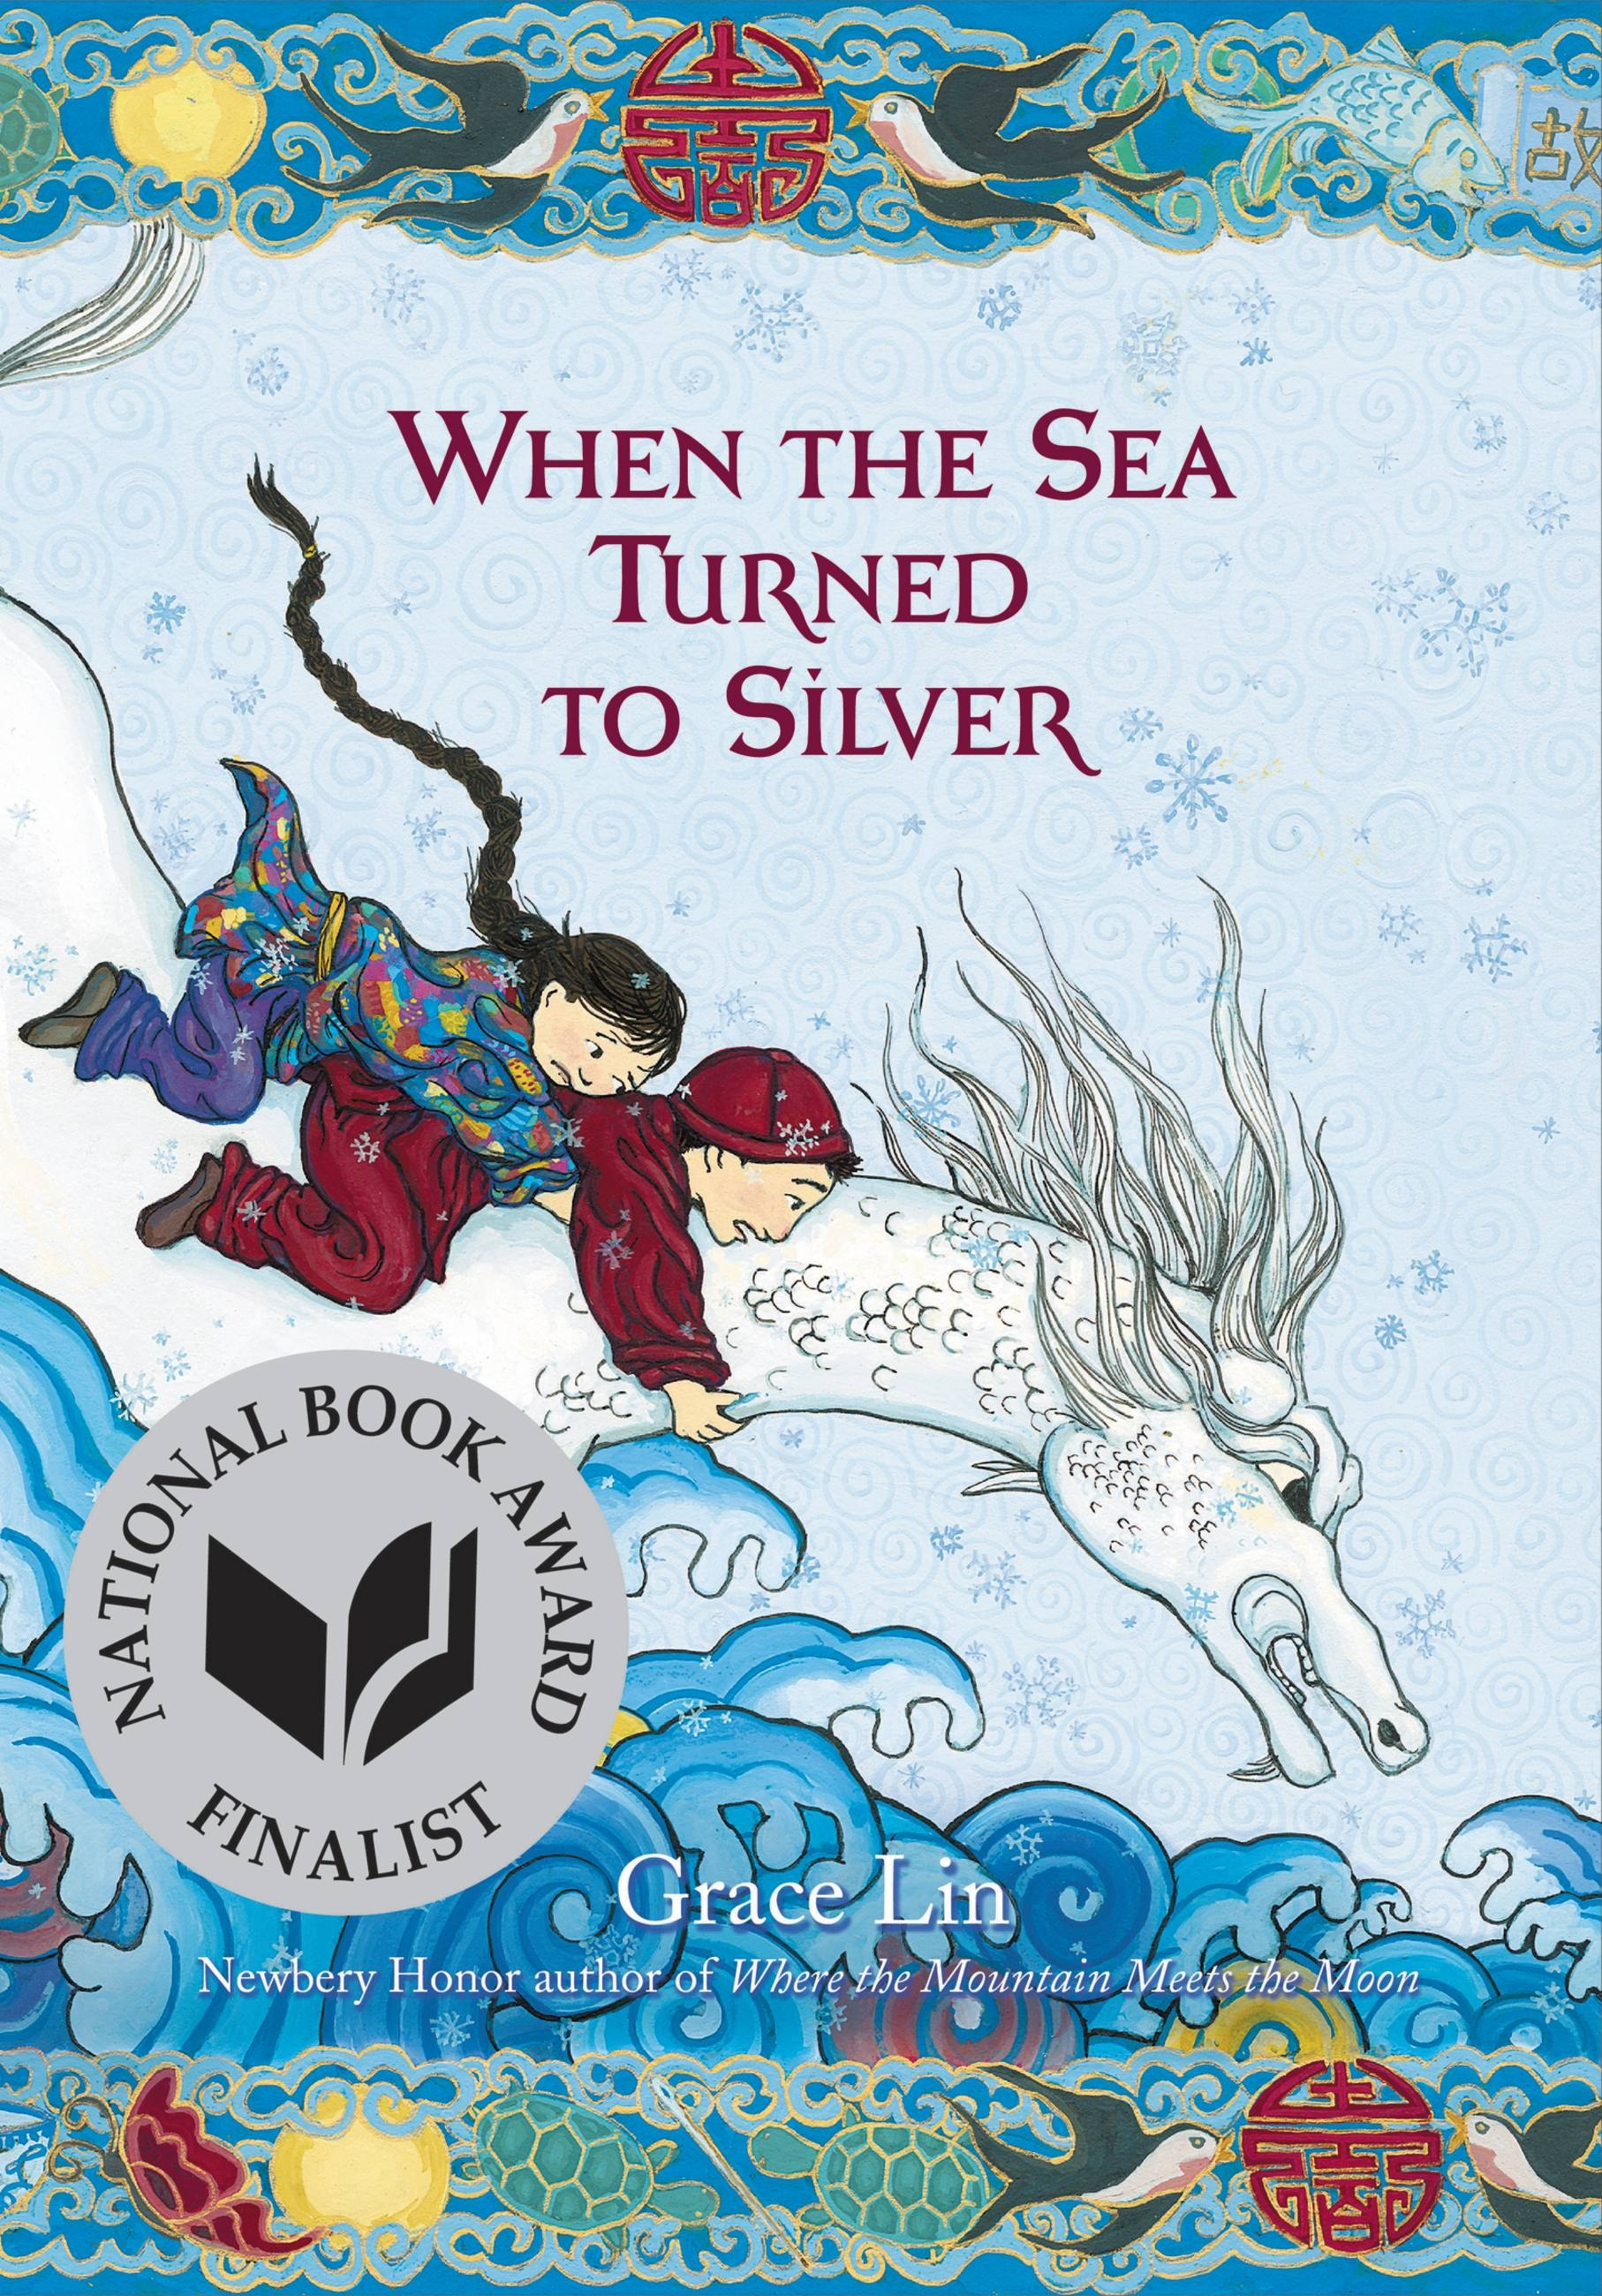 When the Sea Turned to Silver – Hachette Book Group